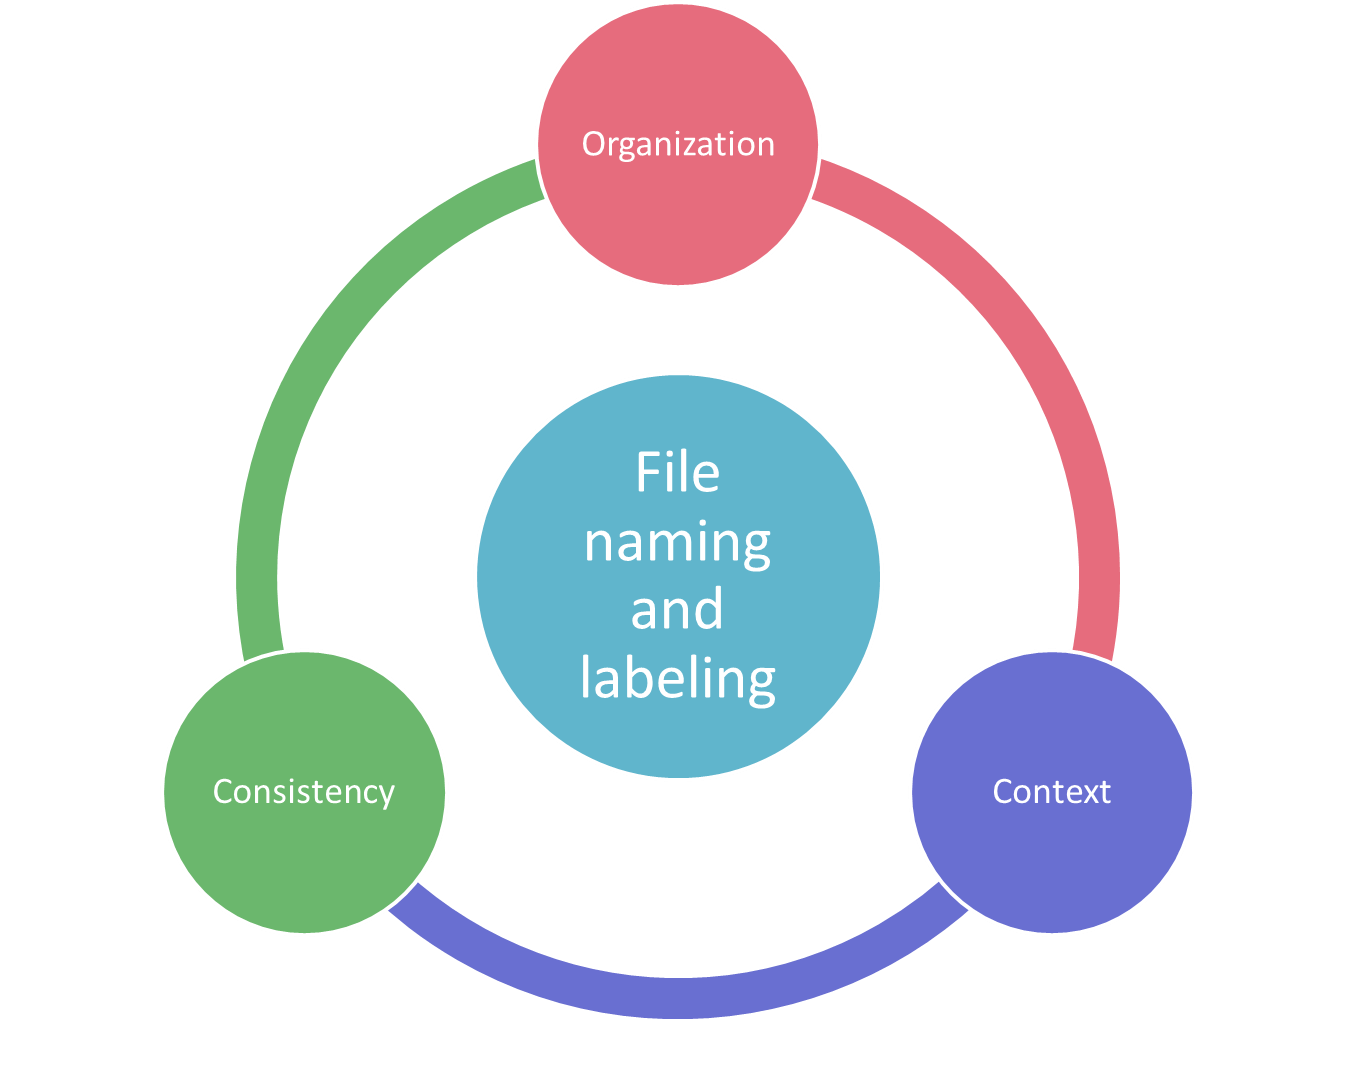 File naming and labeling is a combination of organization, consistency, and context